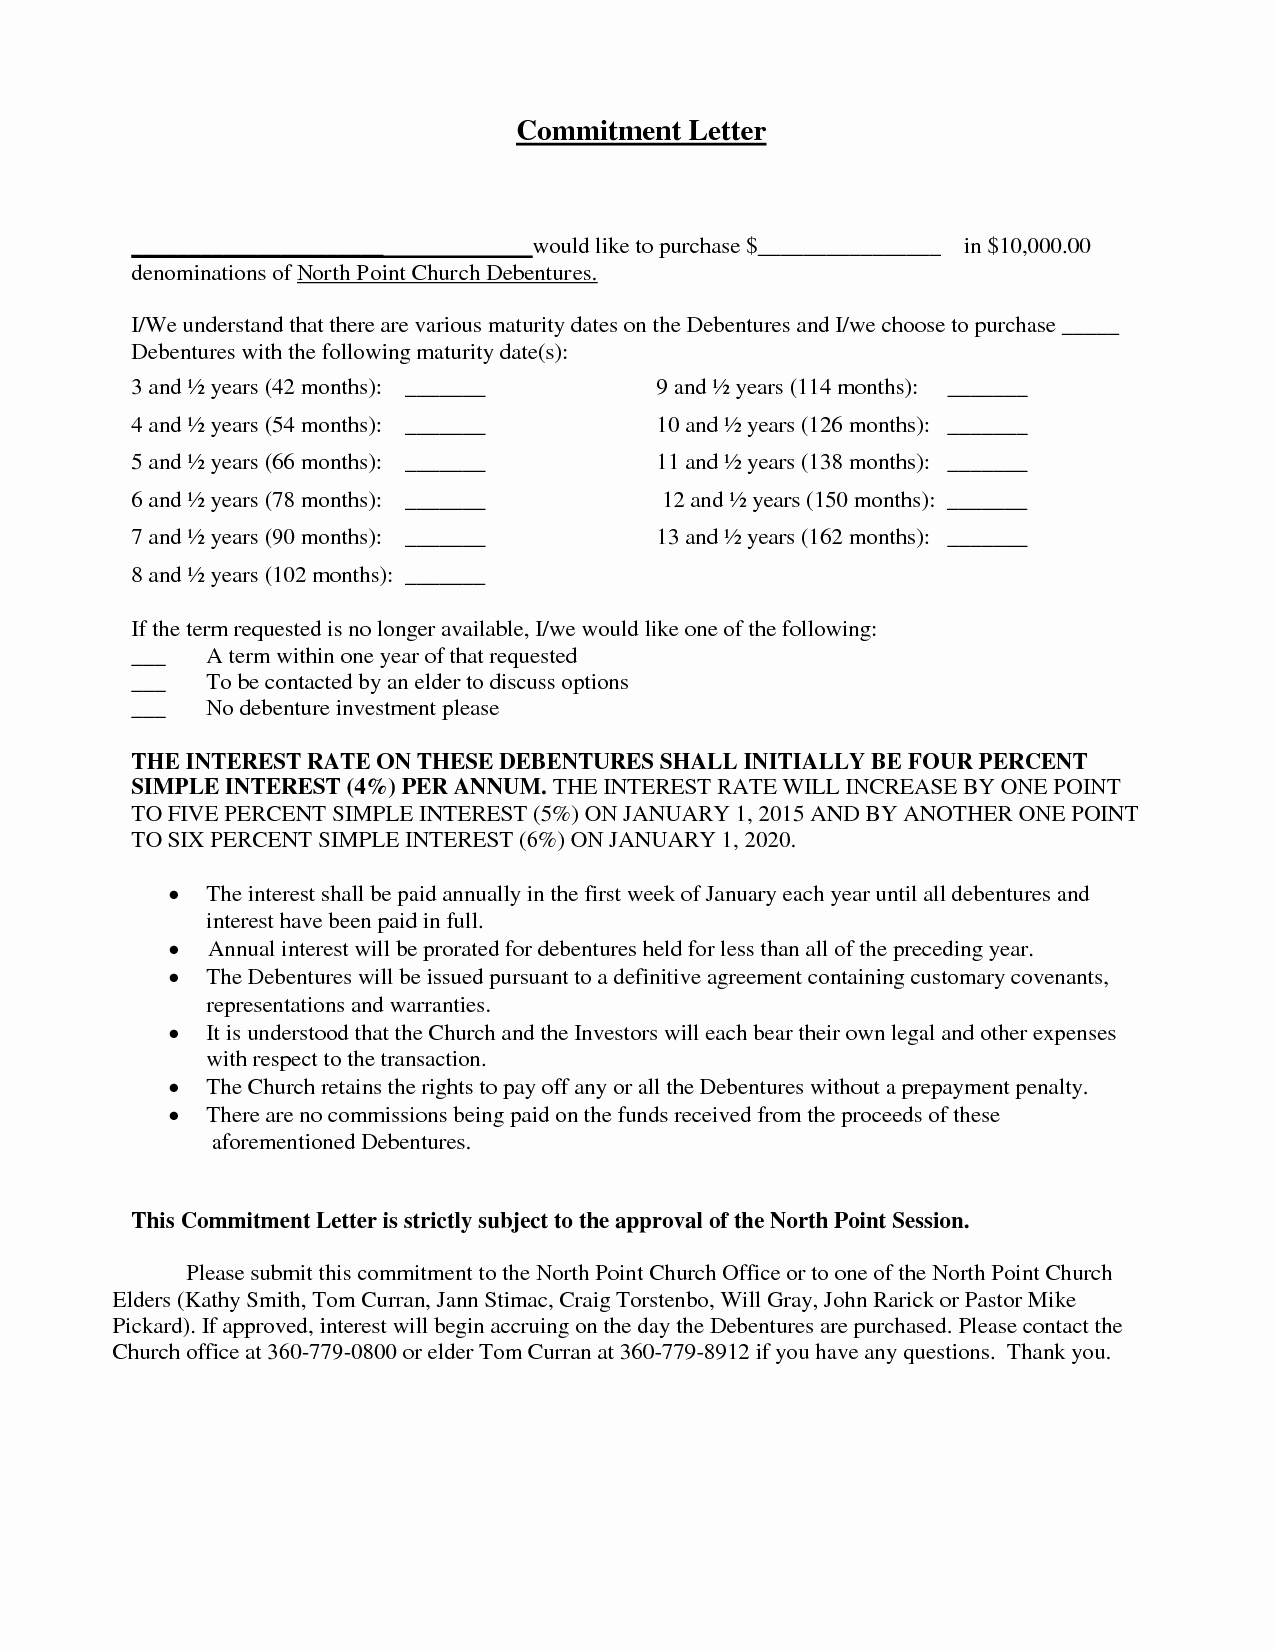 Mortgage Loan Approval Letter Template - Mortgage Gift Letter Template Lovely Sample Letter Bank Loan